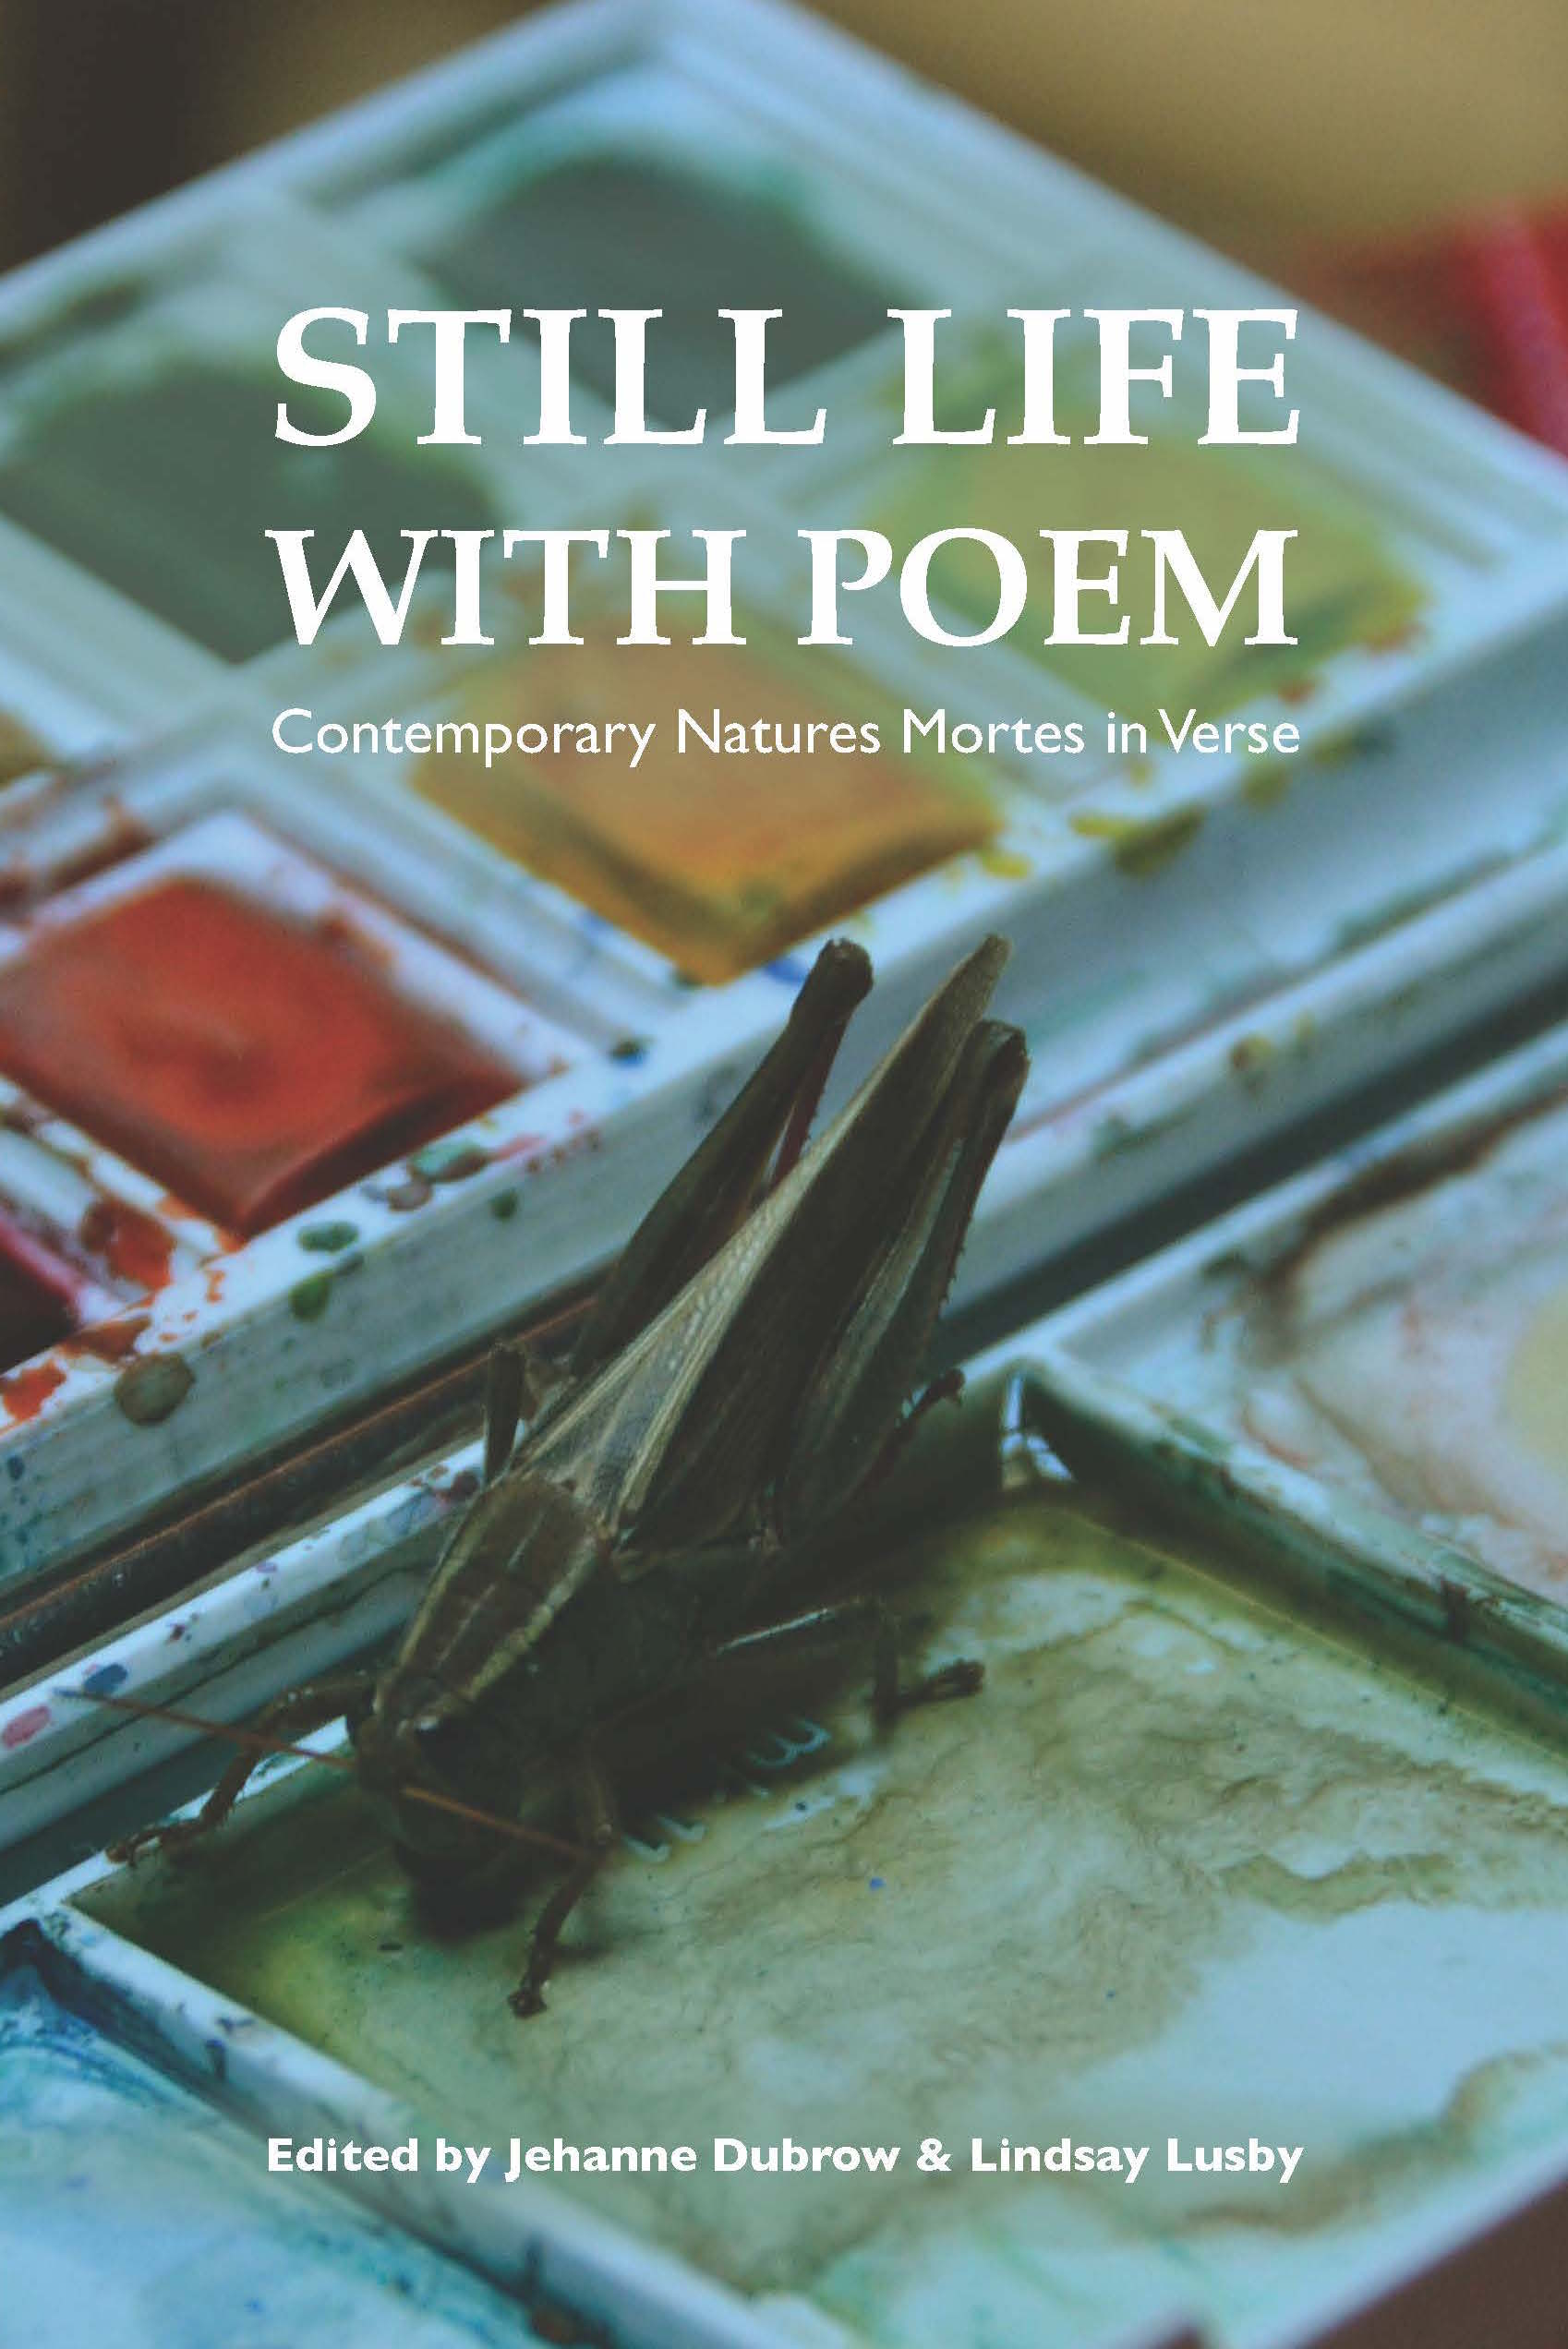 Literary House Series: Still Life with Poem—A Lit House Press Book Launch